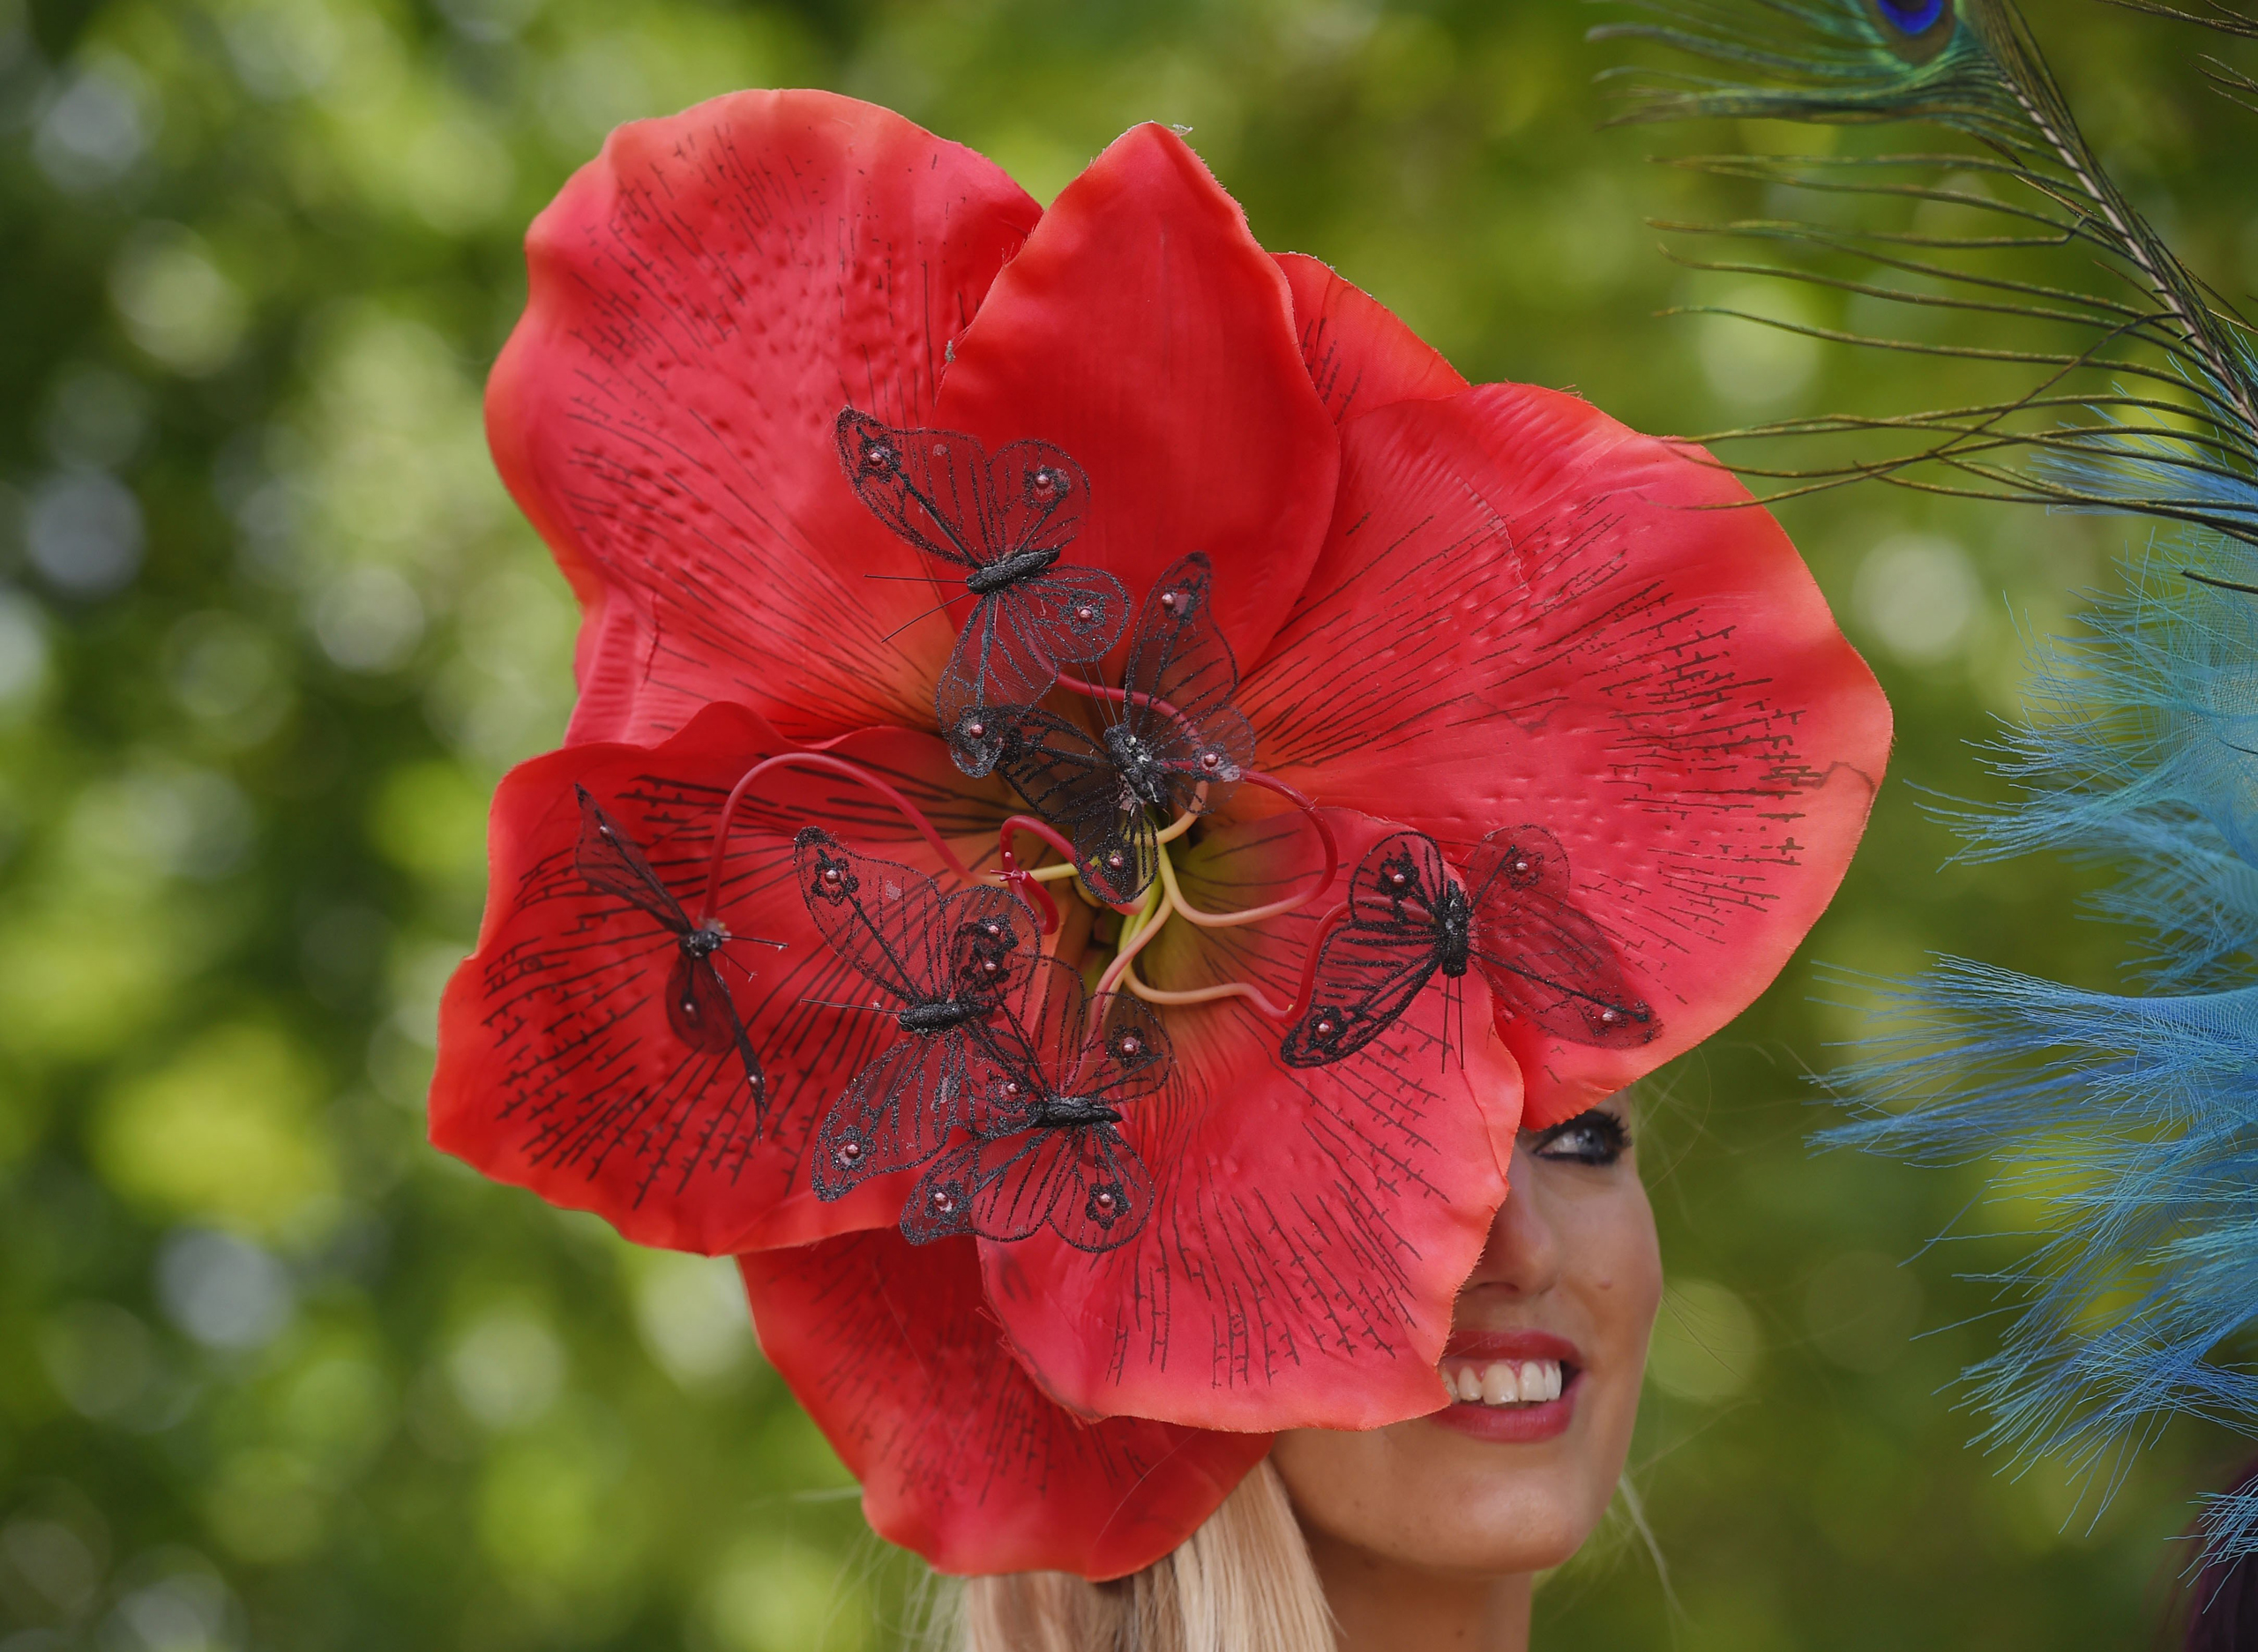 A racegoer's hat as she arrives at the Royal Ascot horse race meeting in Ascot, U.K., on June 15, 2016.